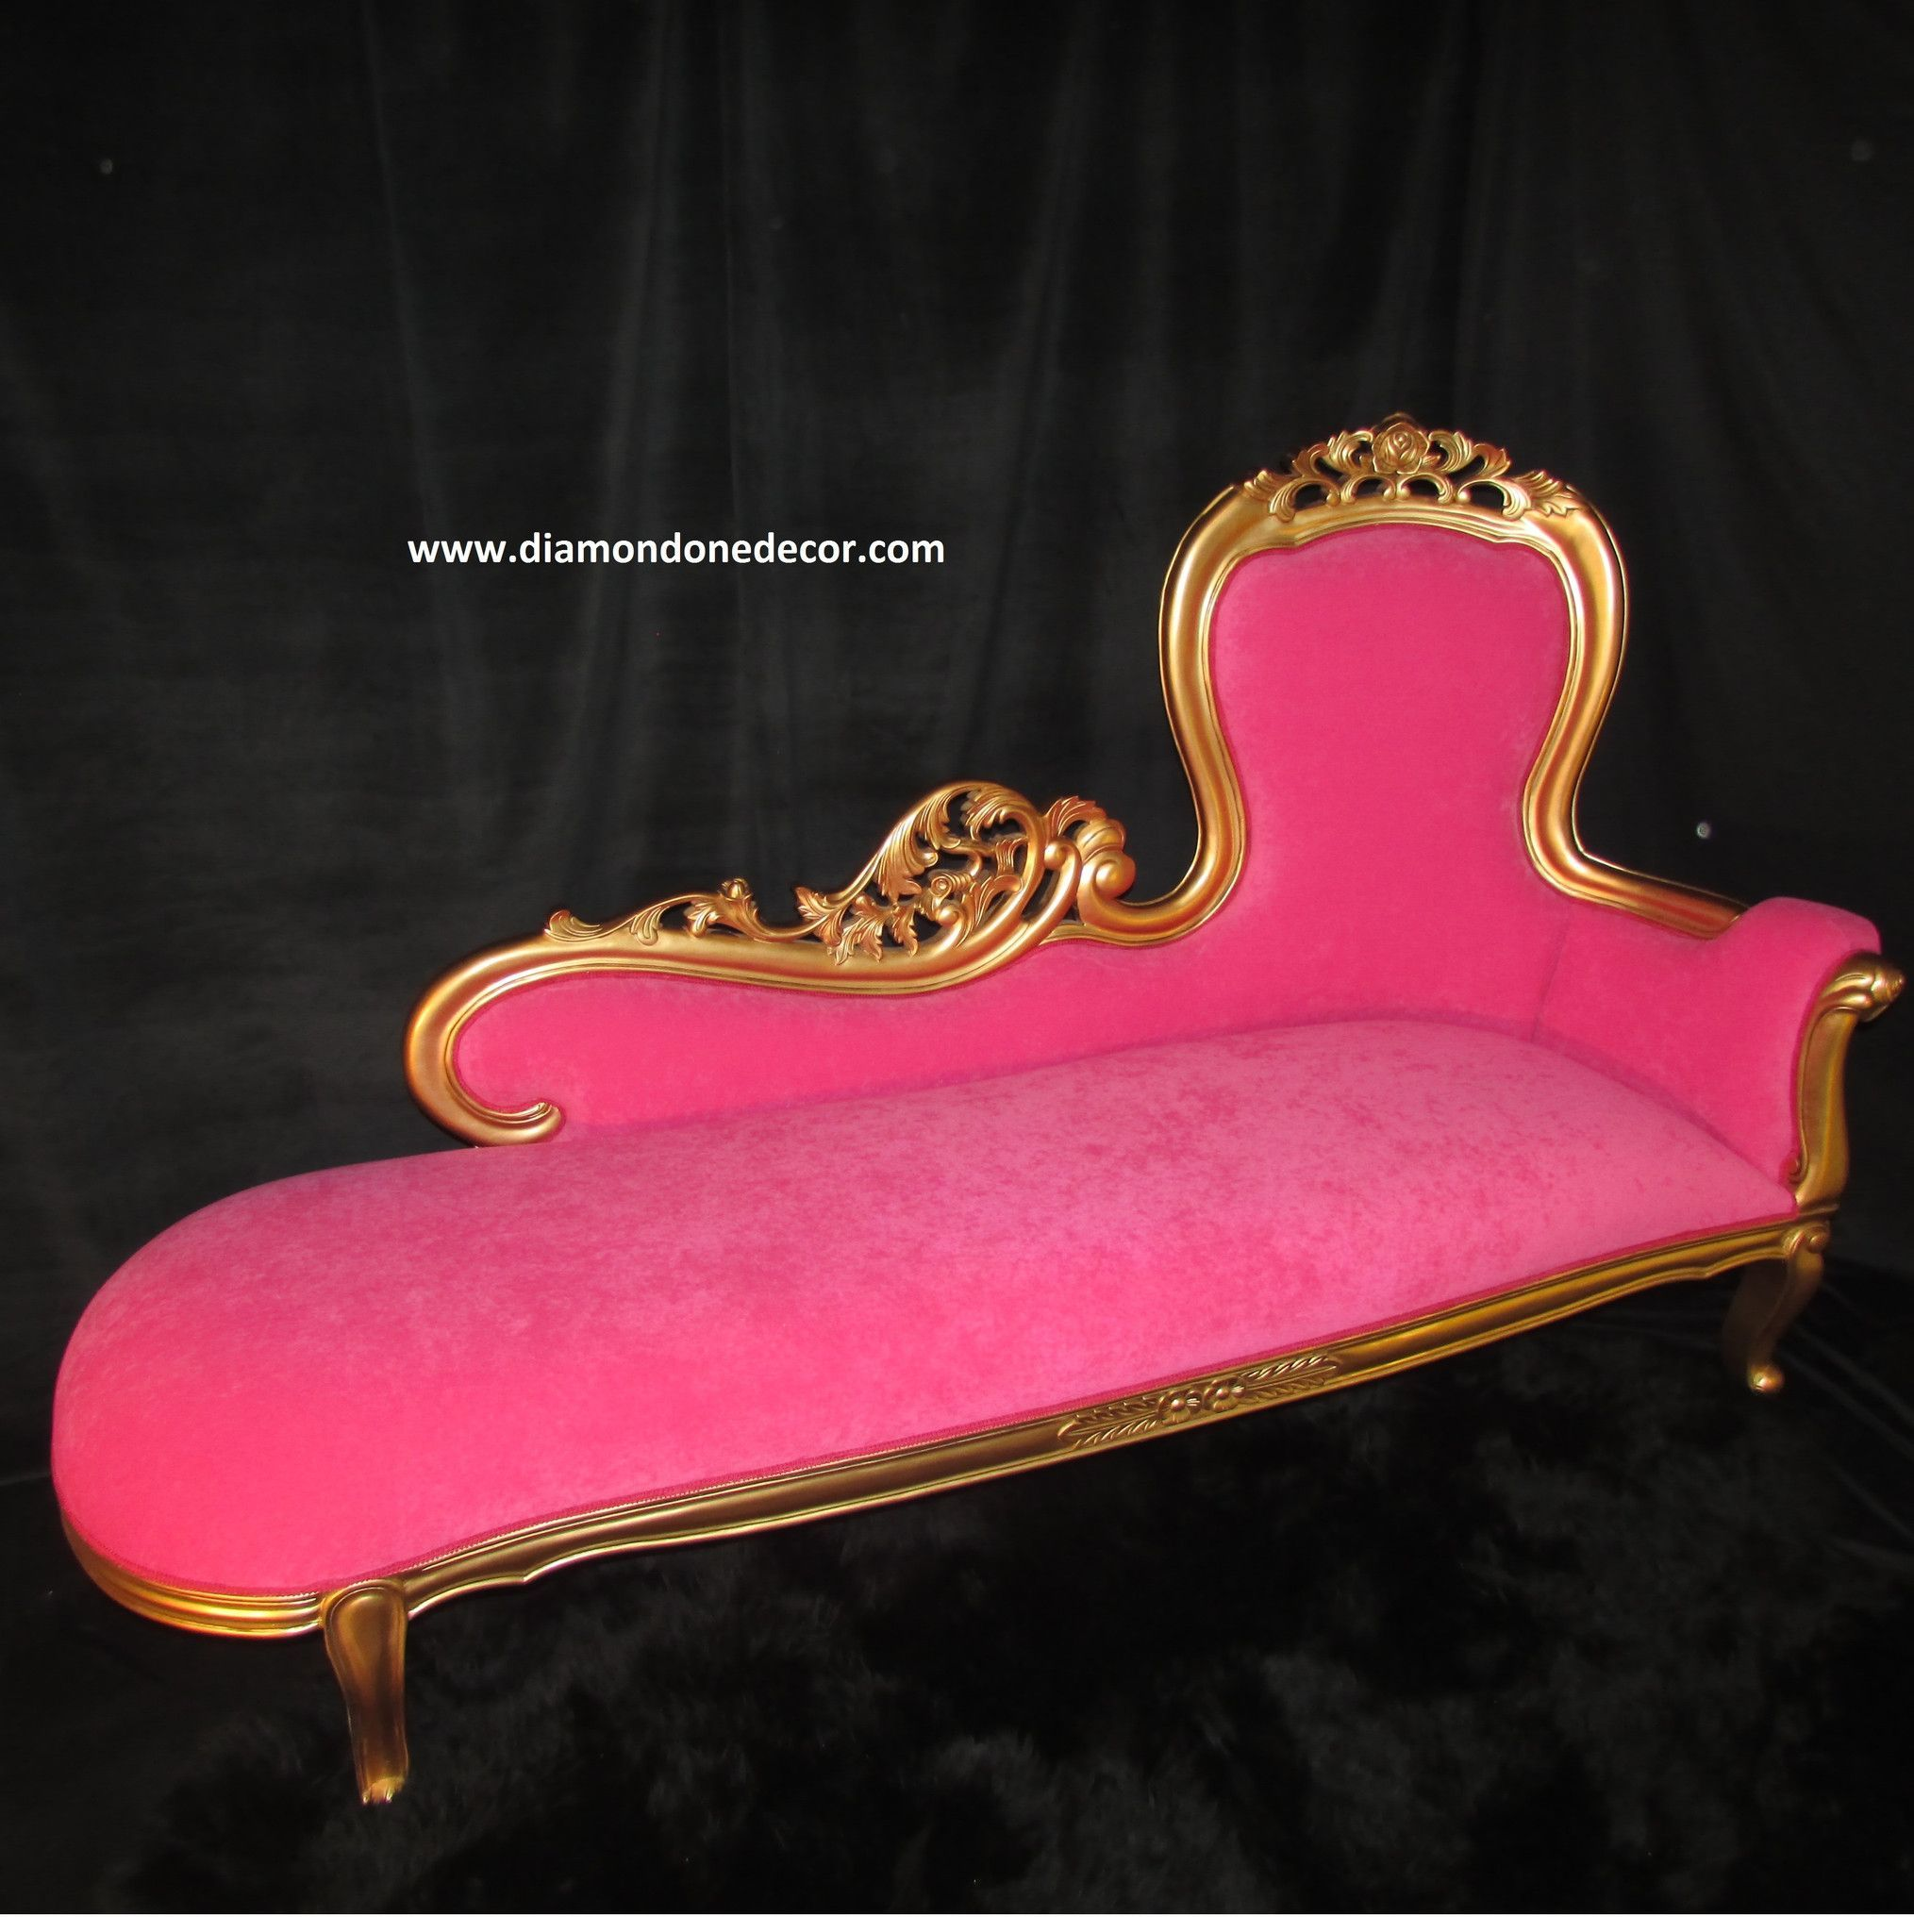 Hot pink baroque french reproduction louis xvi style rococo fainting couch or - Chaise style baroque ...